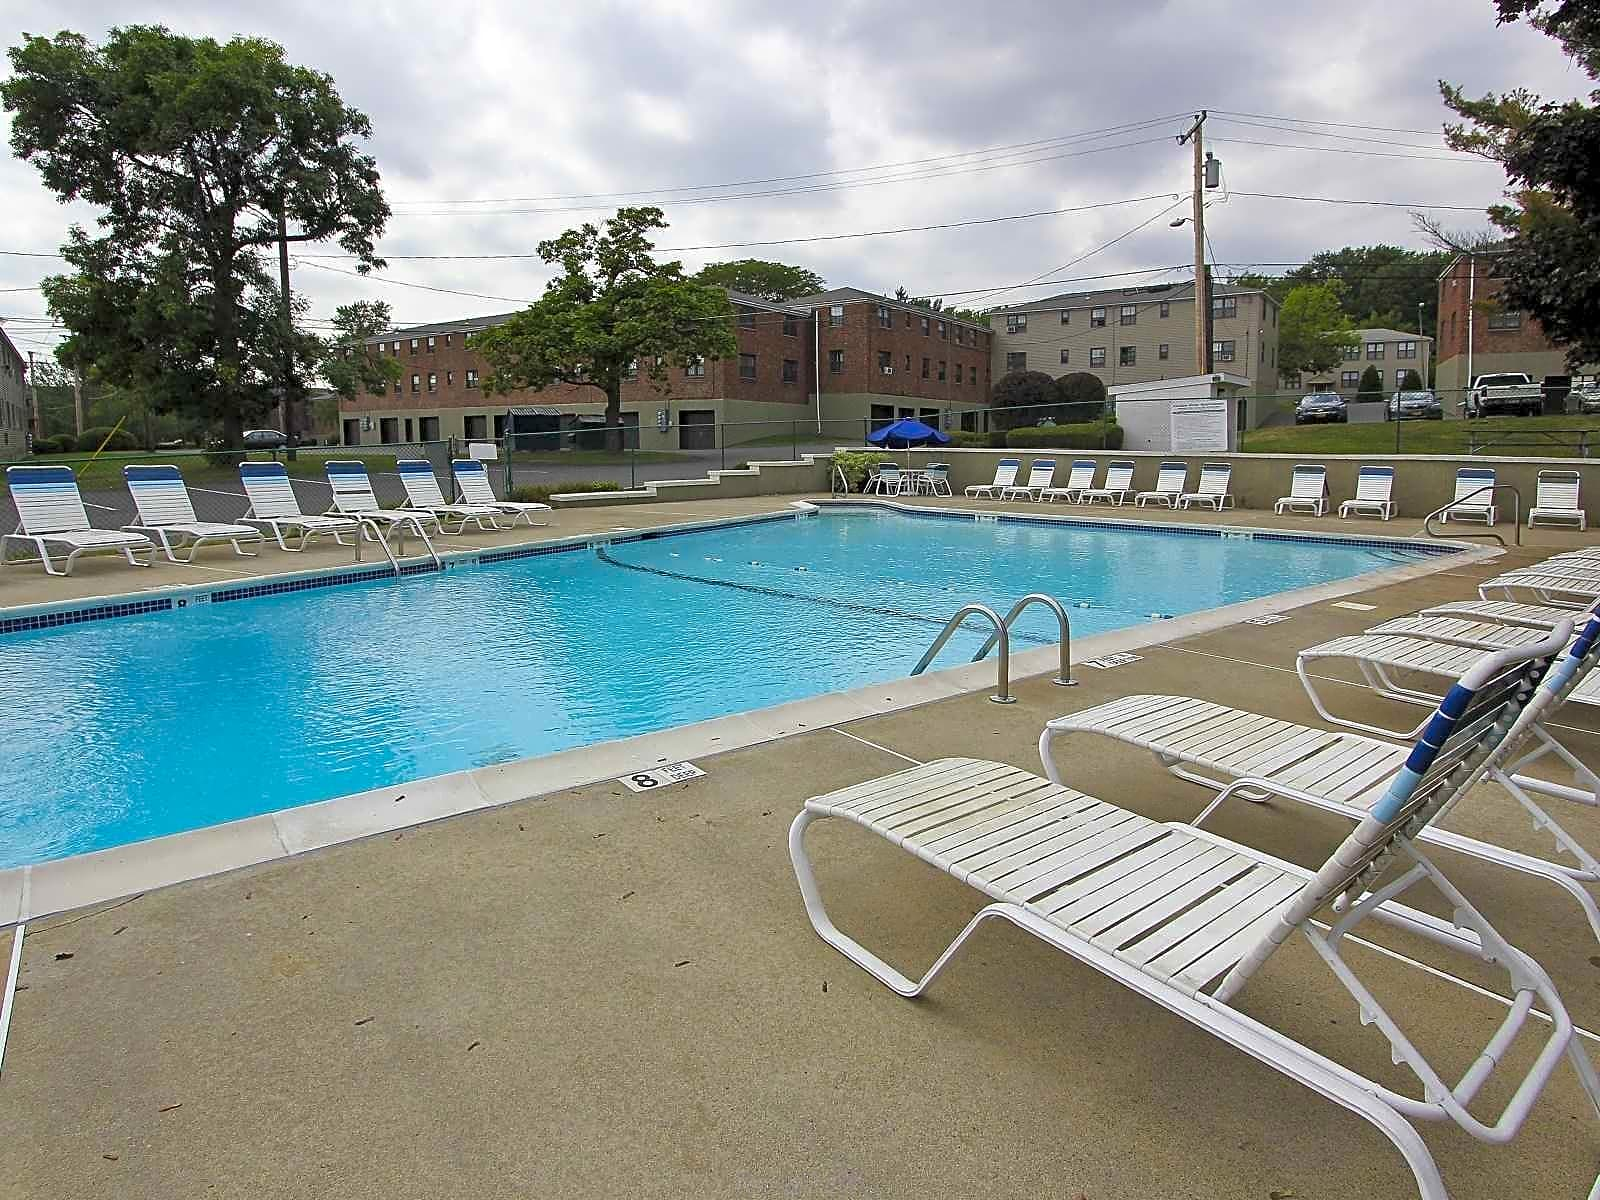 Apartments Near Siena Loudon Arms Apartments for Siena College Students in Loudonville, NY